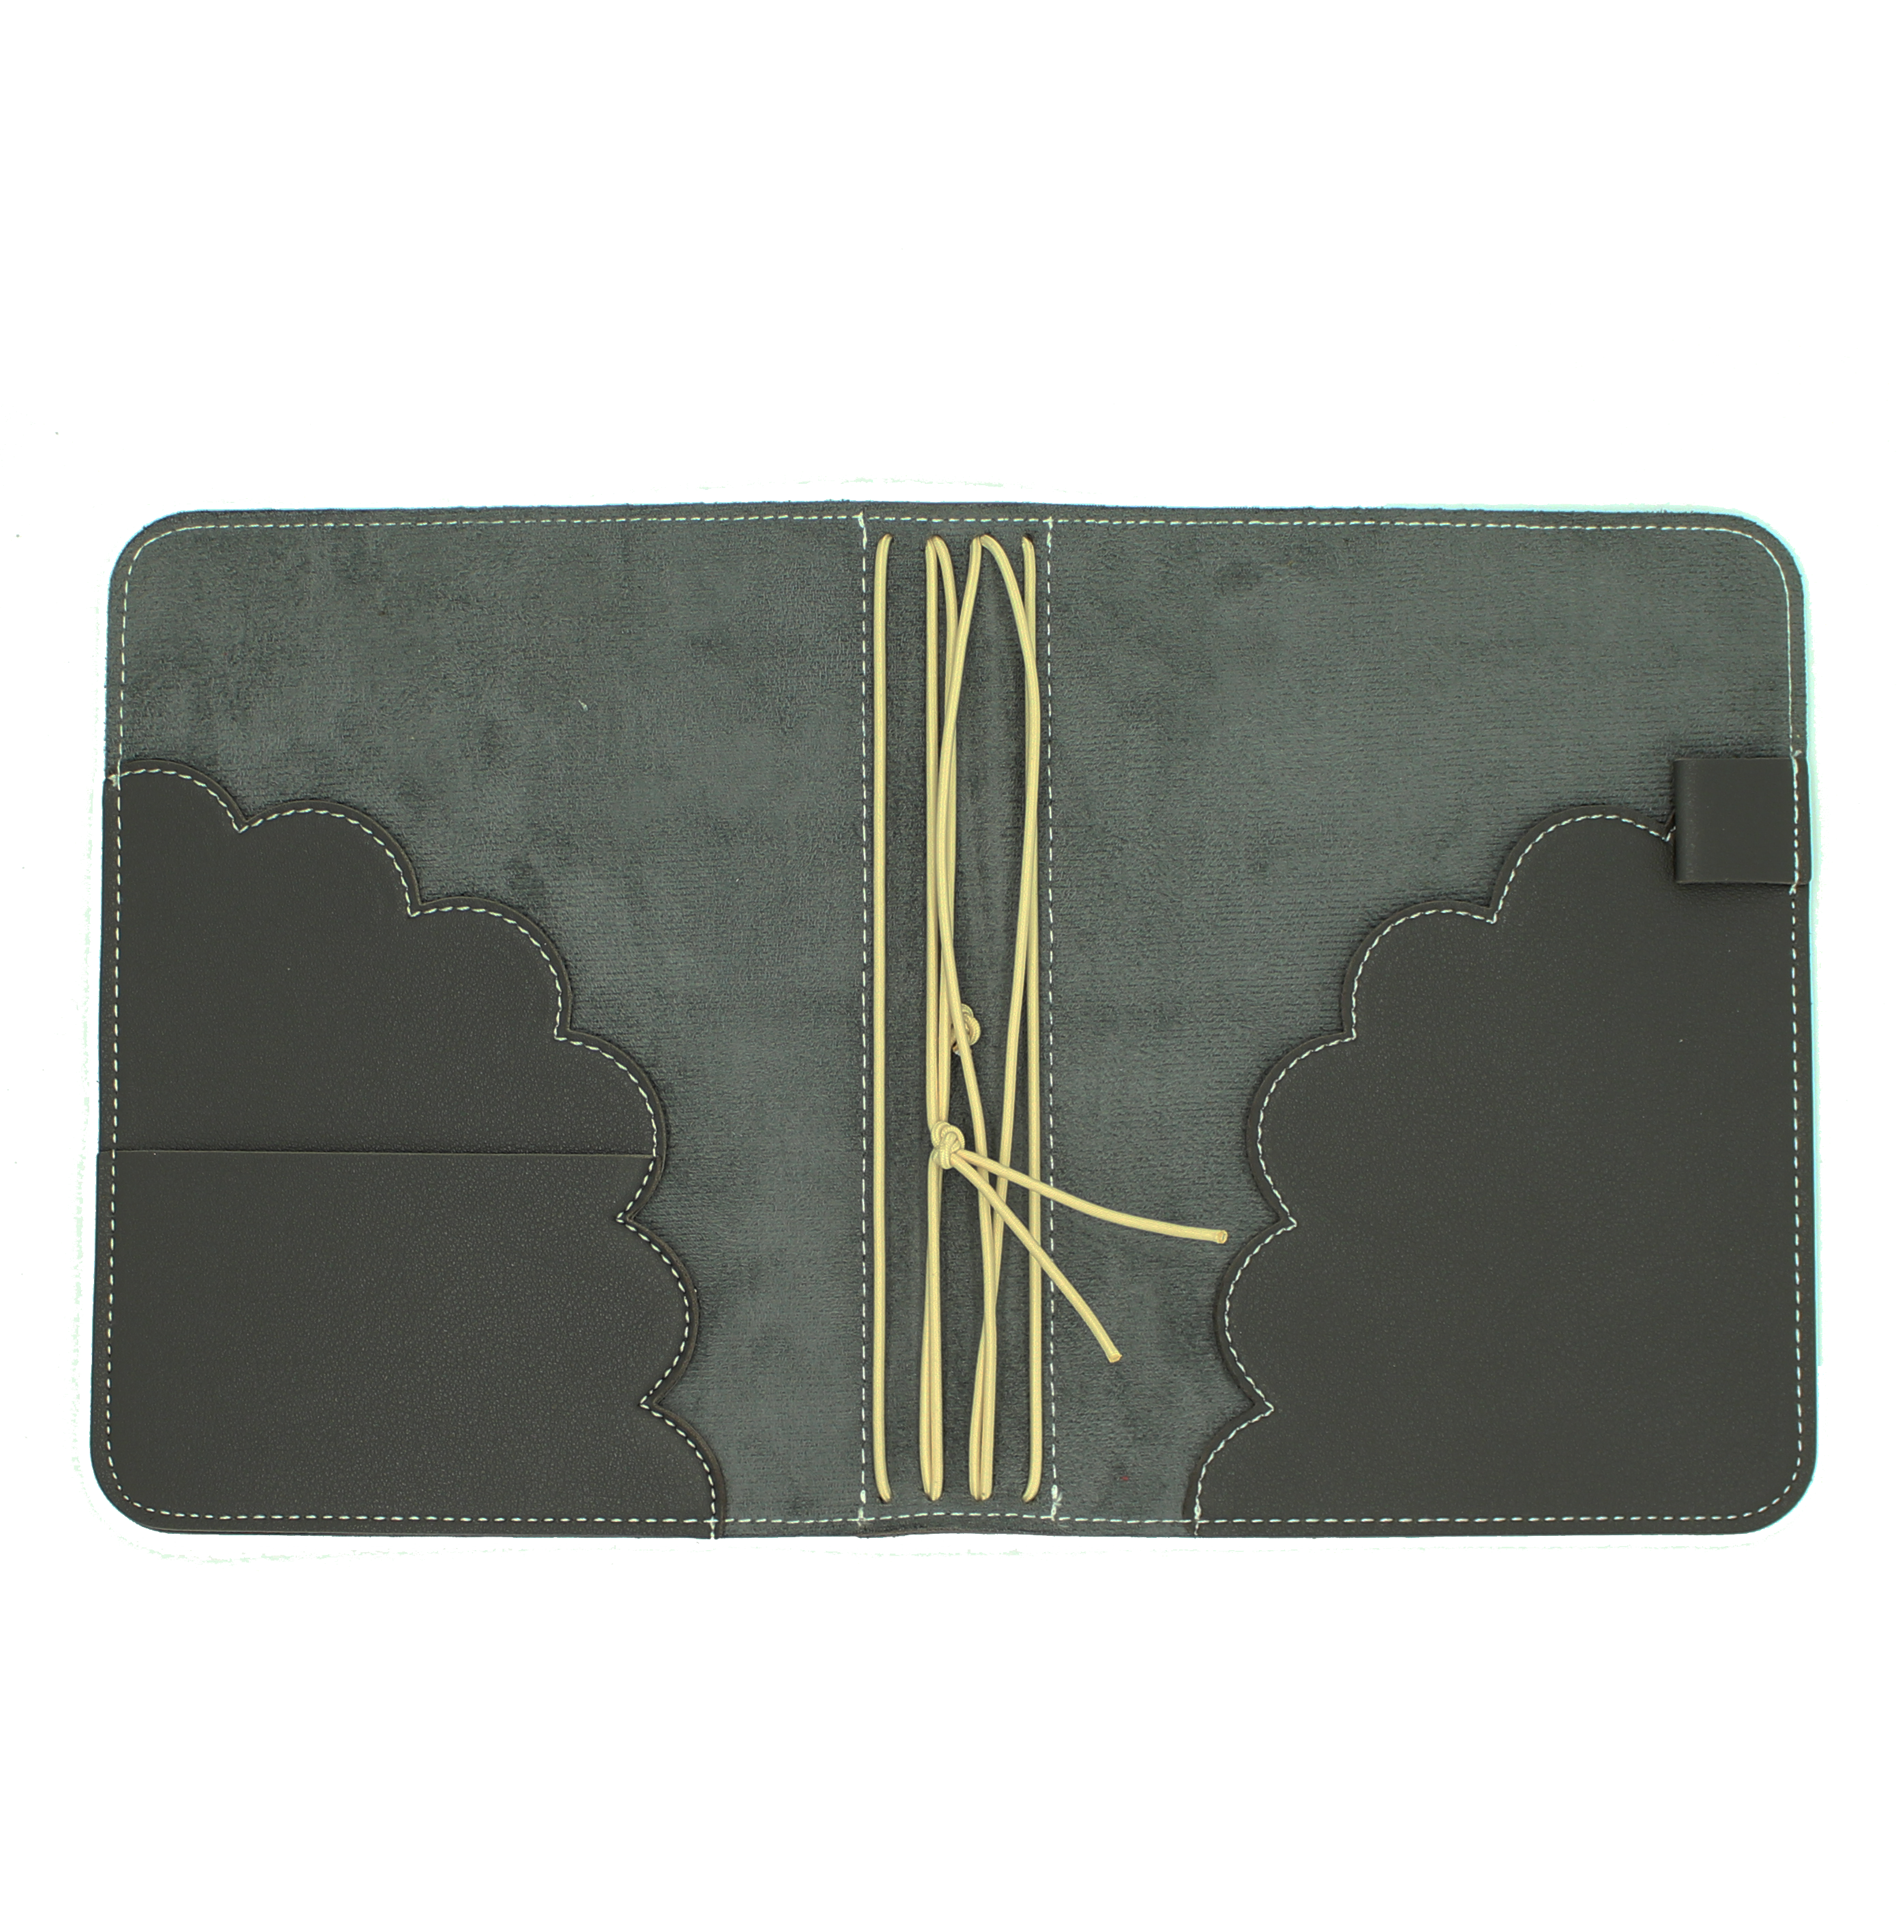 Perfect Fit B6 Traveler's Notebook - Slate